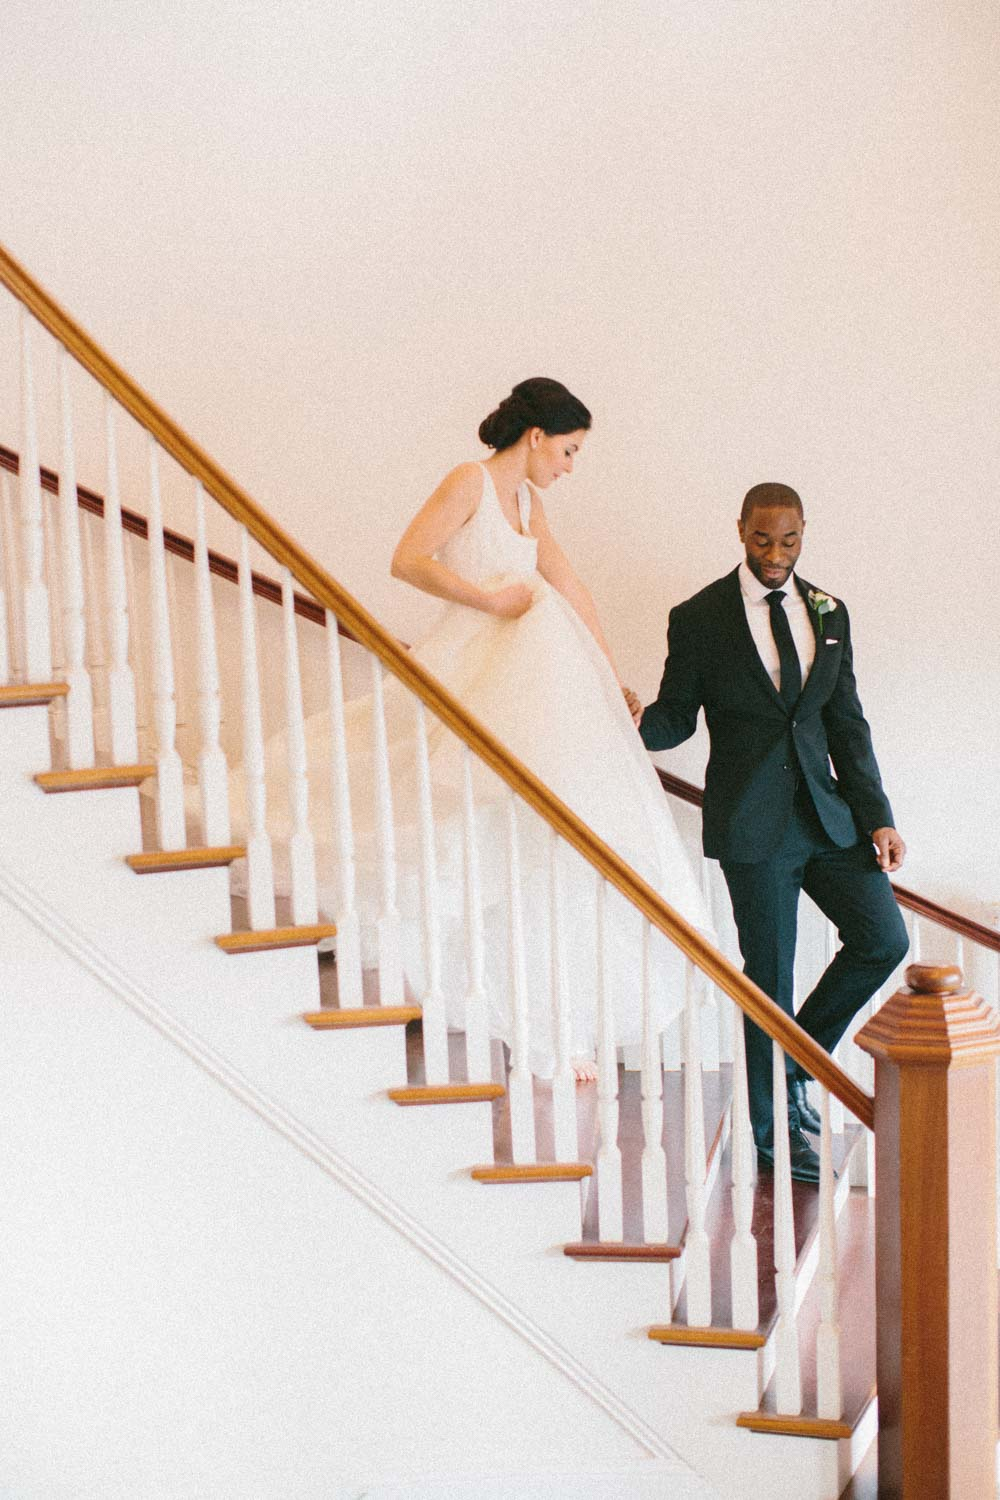 groom helping bride down stair while she holds her dress